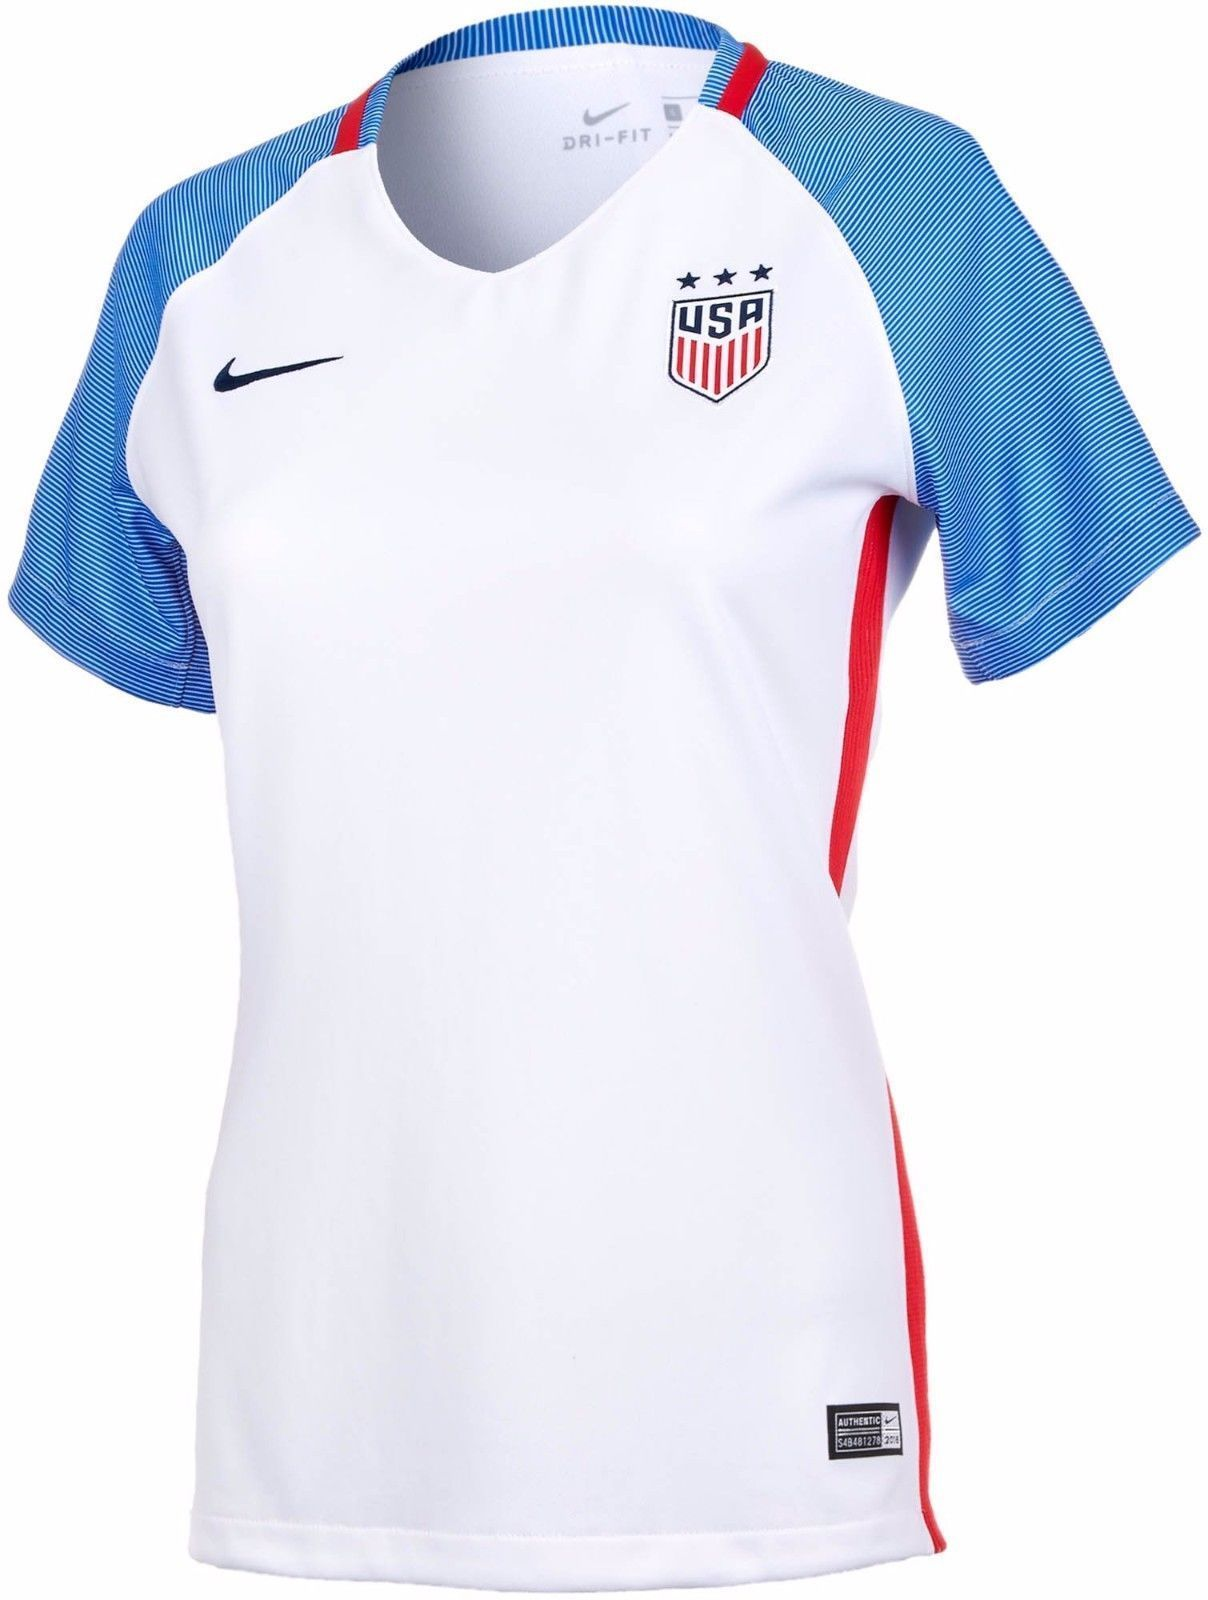 18a68aeef S l1600. S l1600. Previous.  90 NEW 2016 Nike USA United States Womens XL  Home Soccer White Jersey